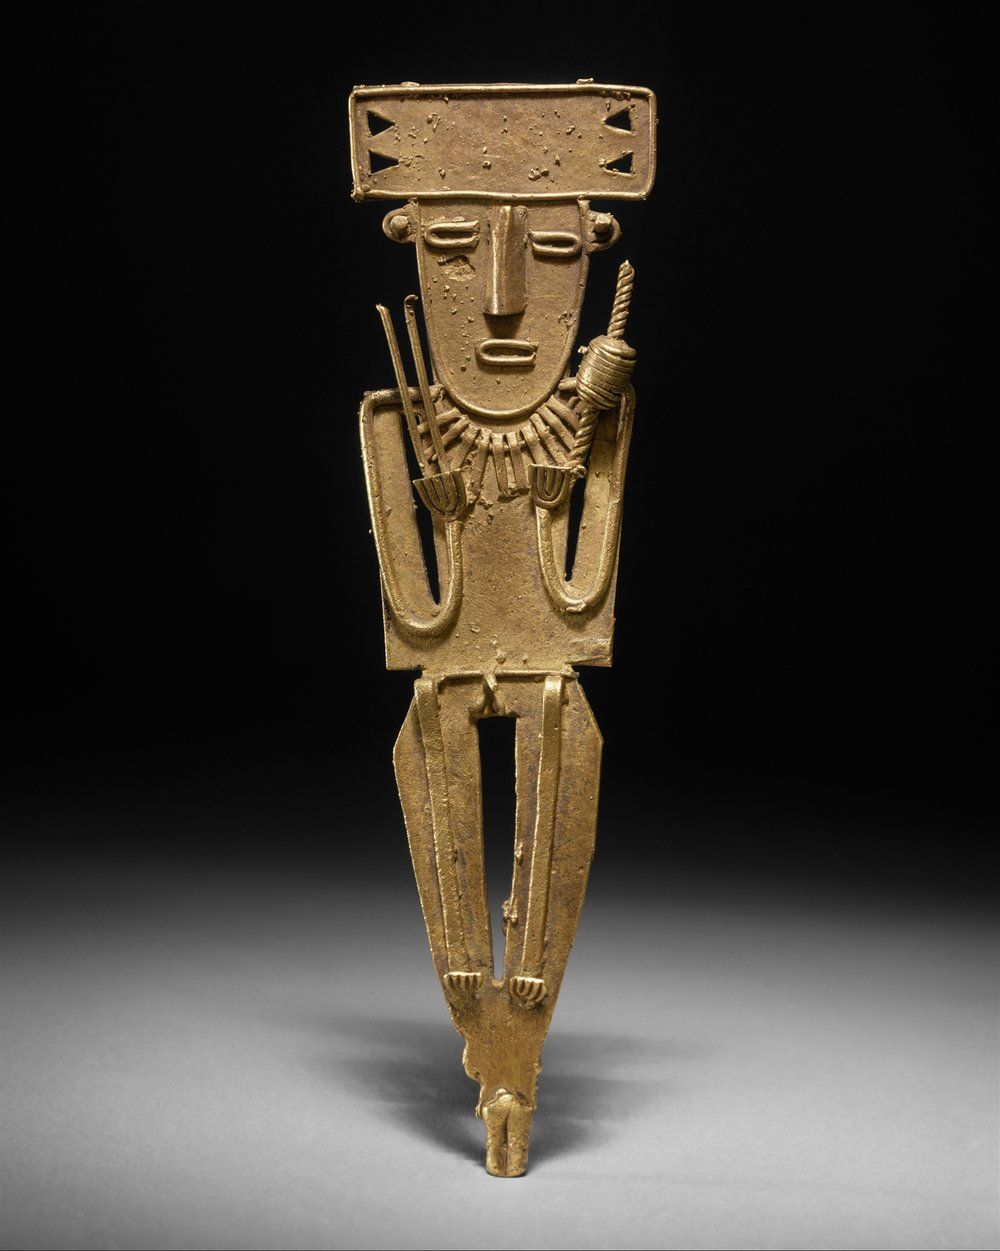 Muisca Male Figure (Tunjo), 10th - mid-16th Century, Gold  |  ©  The Met Museum   |  Creative Commons Licence CC0 1.0